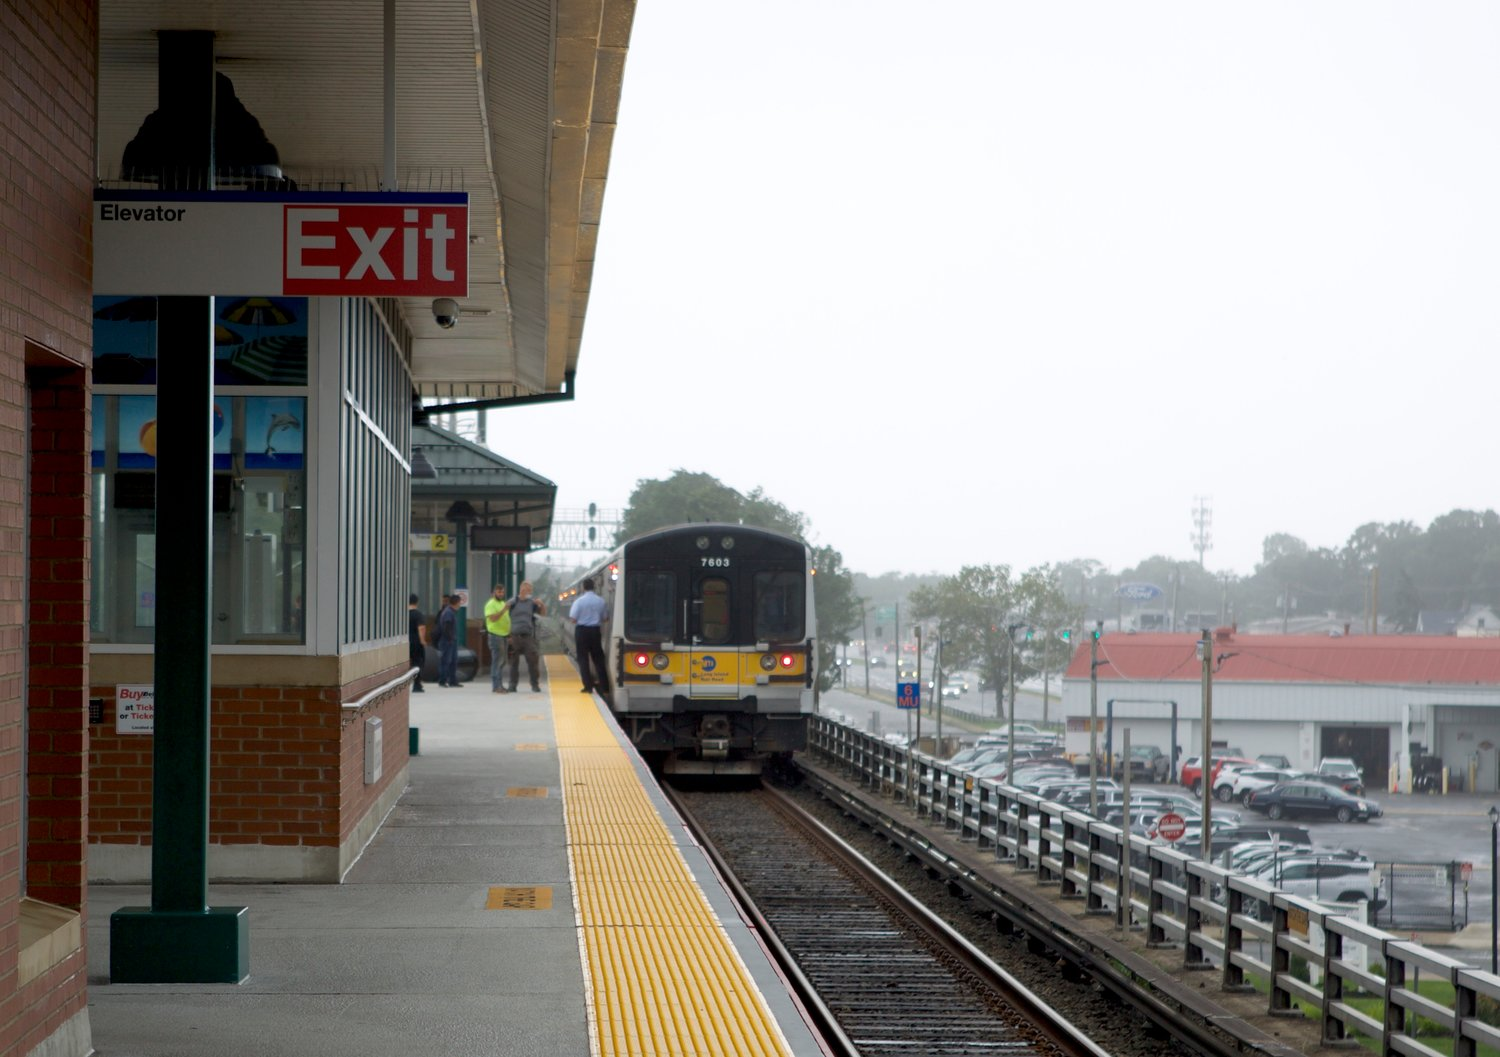 A Long Island Rail Road train became stuck at the Wantagh station amid Isaias. The LIRR shut down all service during the storm.